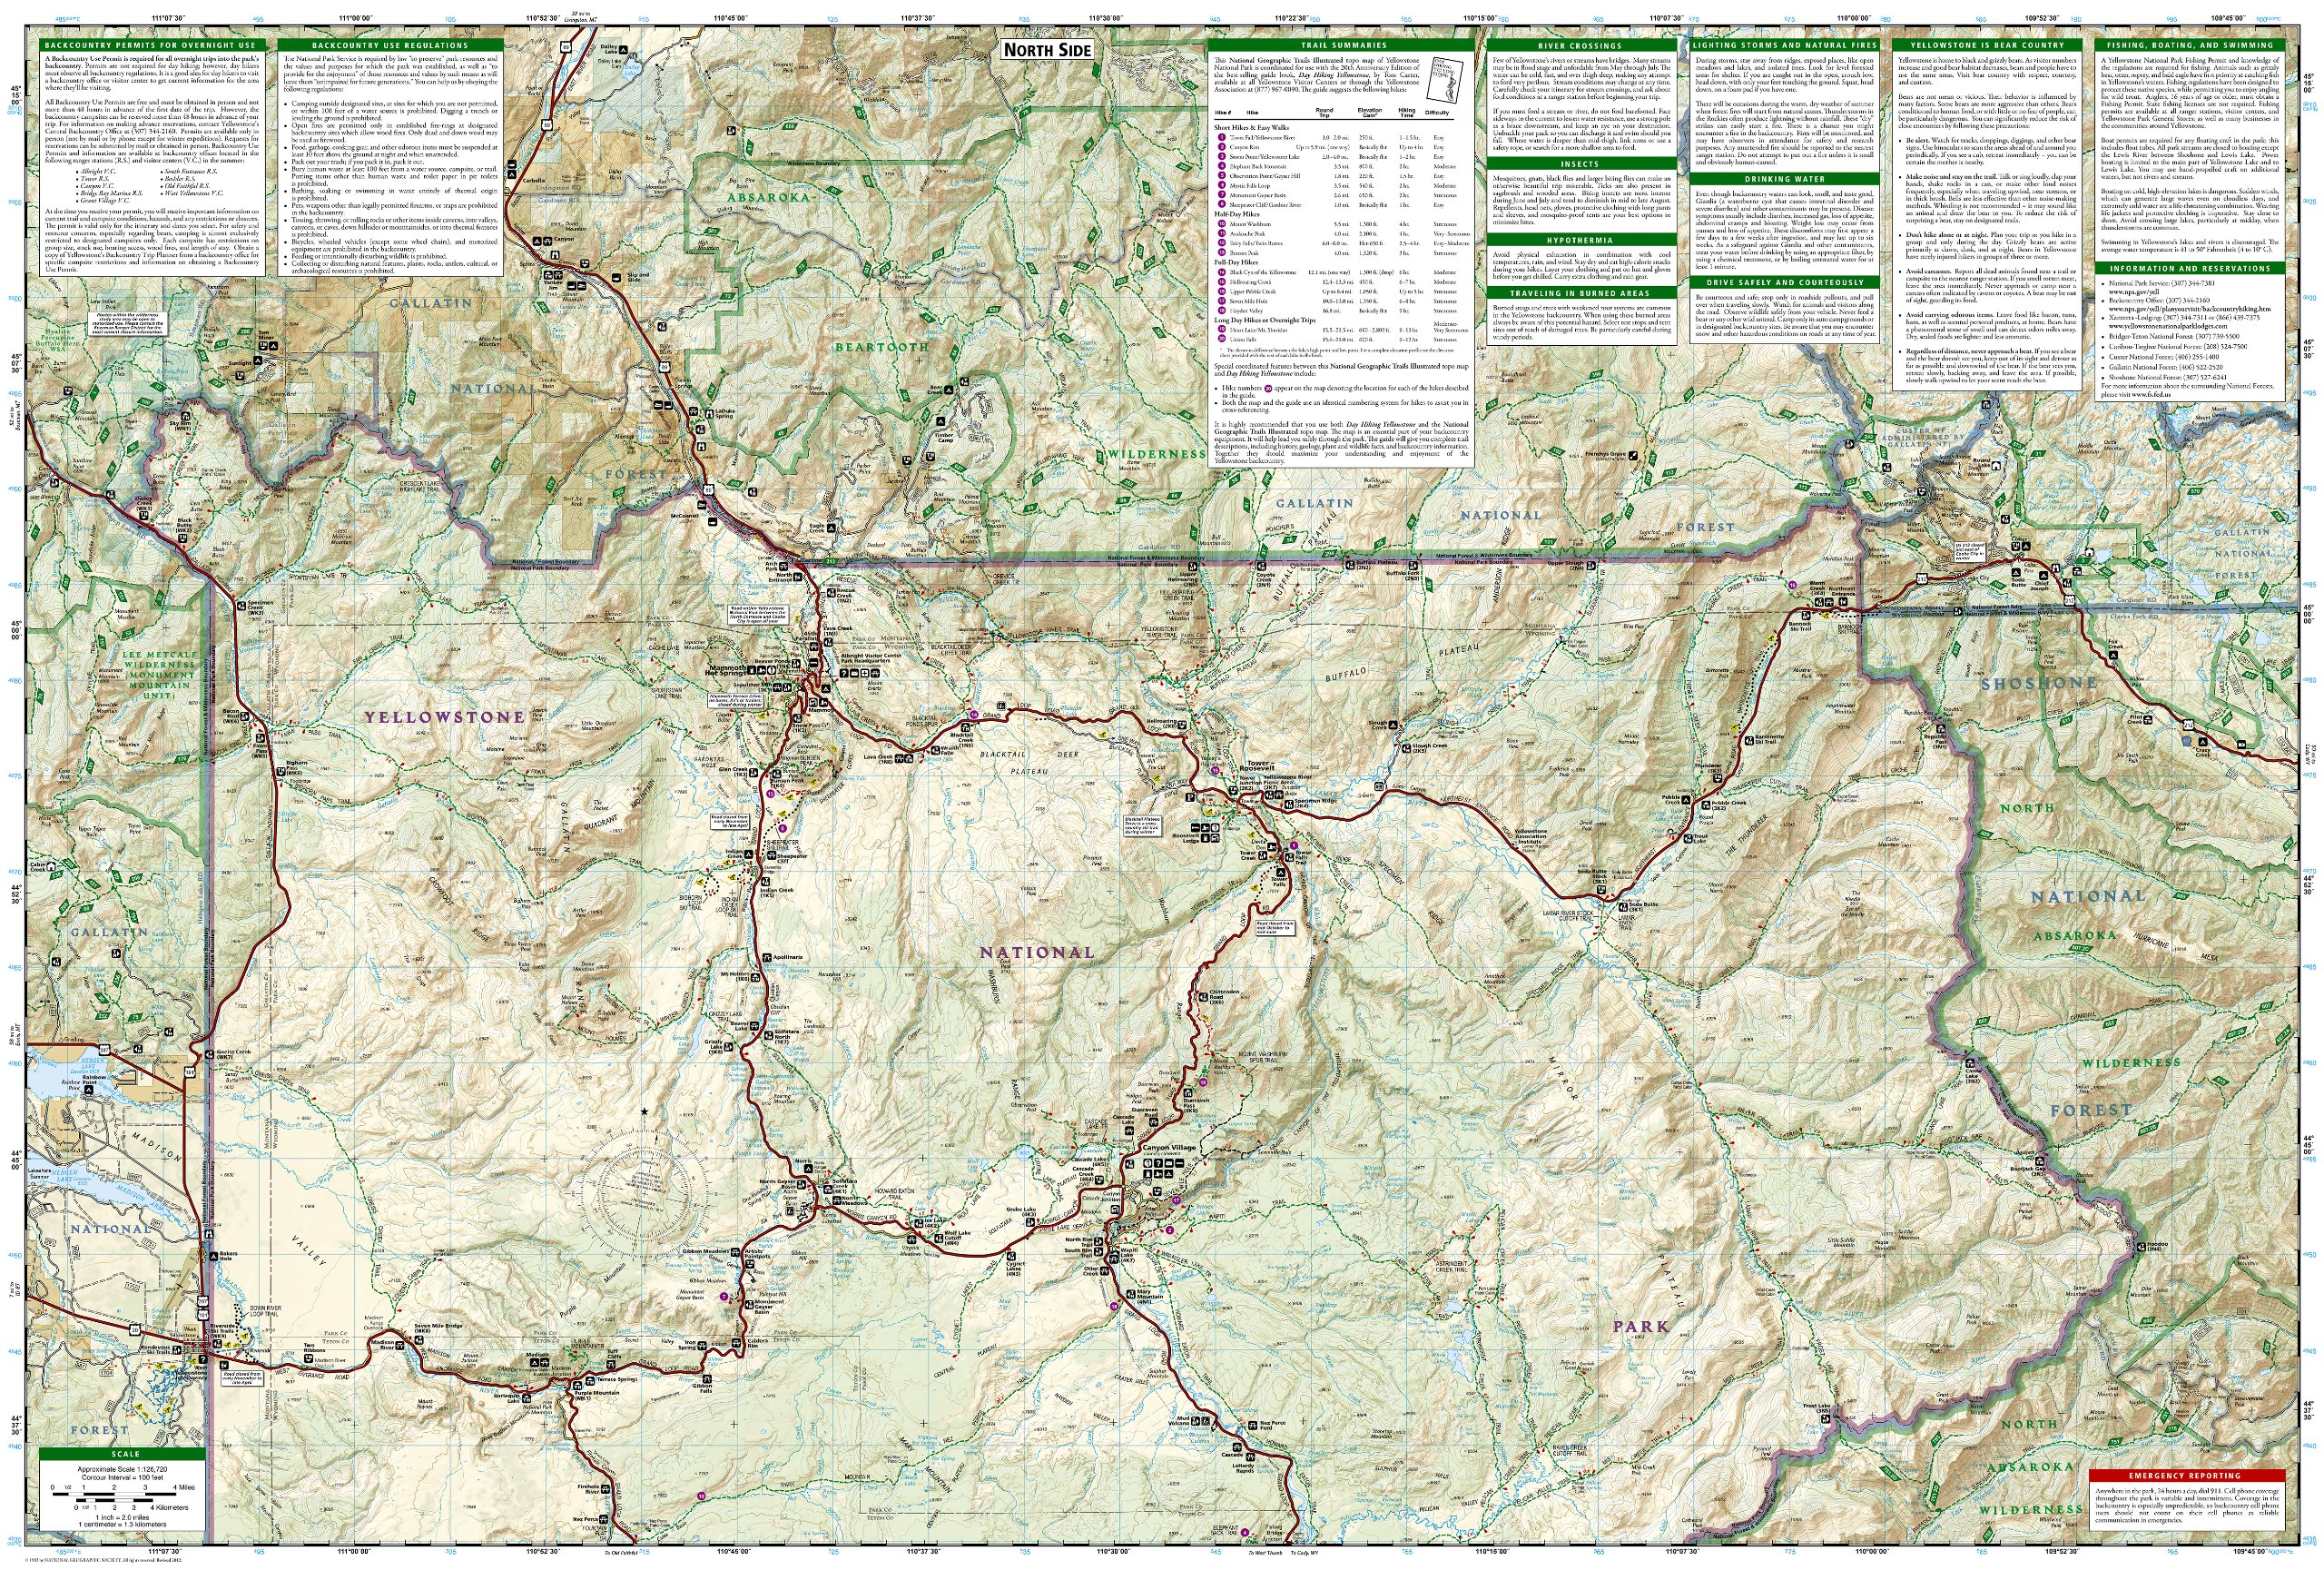 Topographic Map Of Yellowstone.Yellowstone Trails Illustrated Map Np201 Gps Compatible Amazon